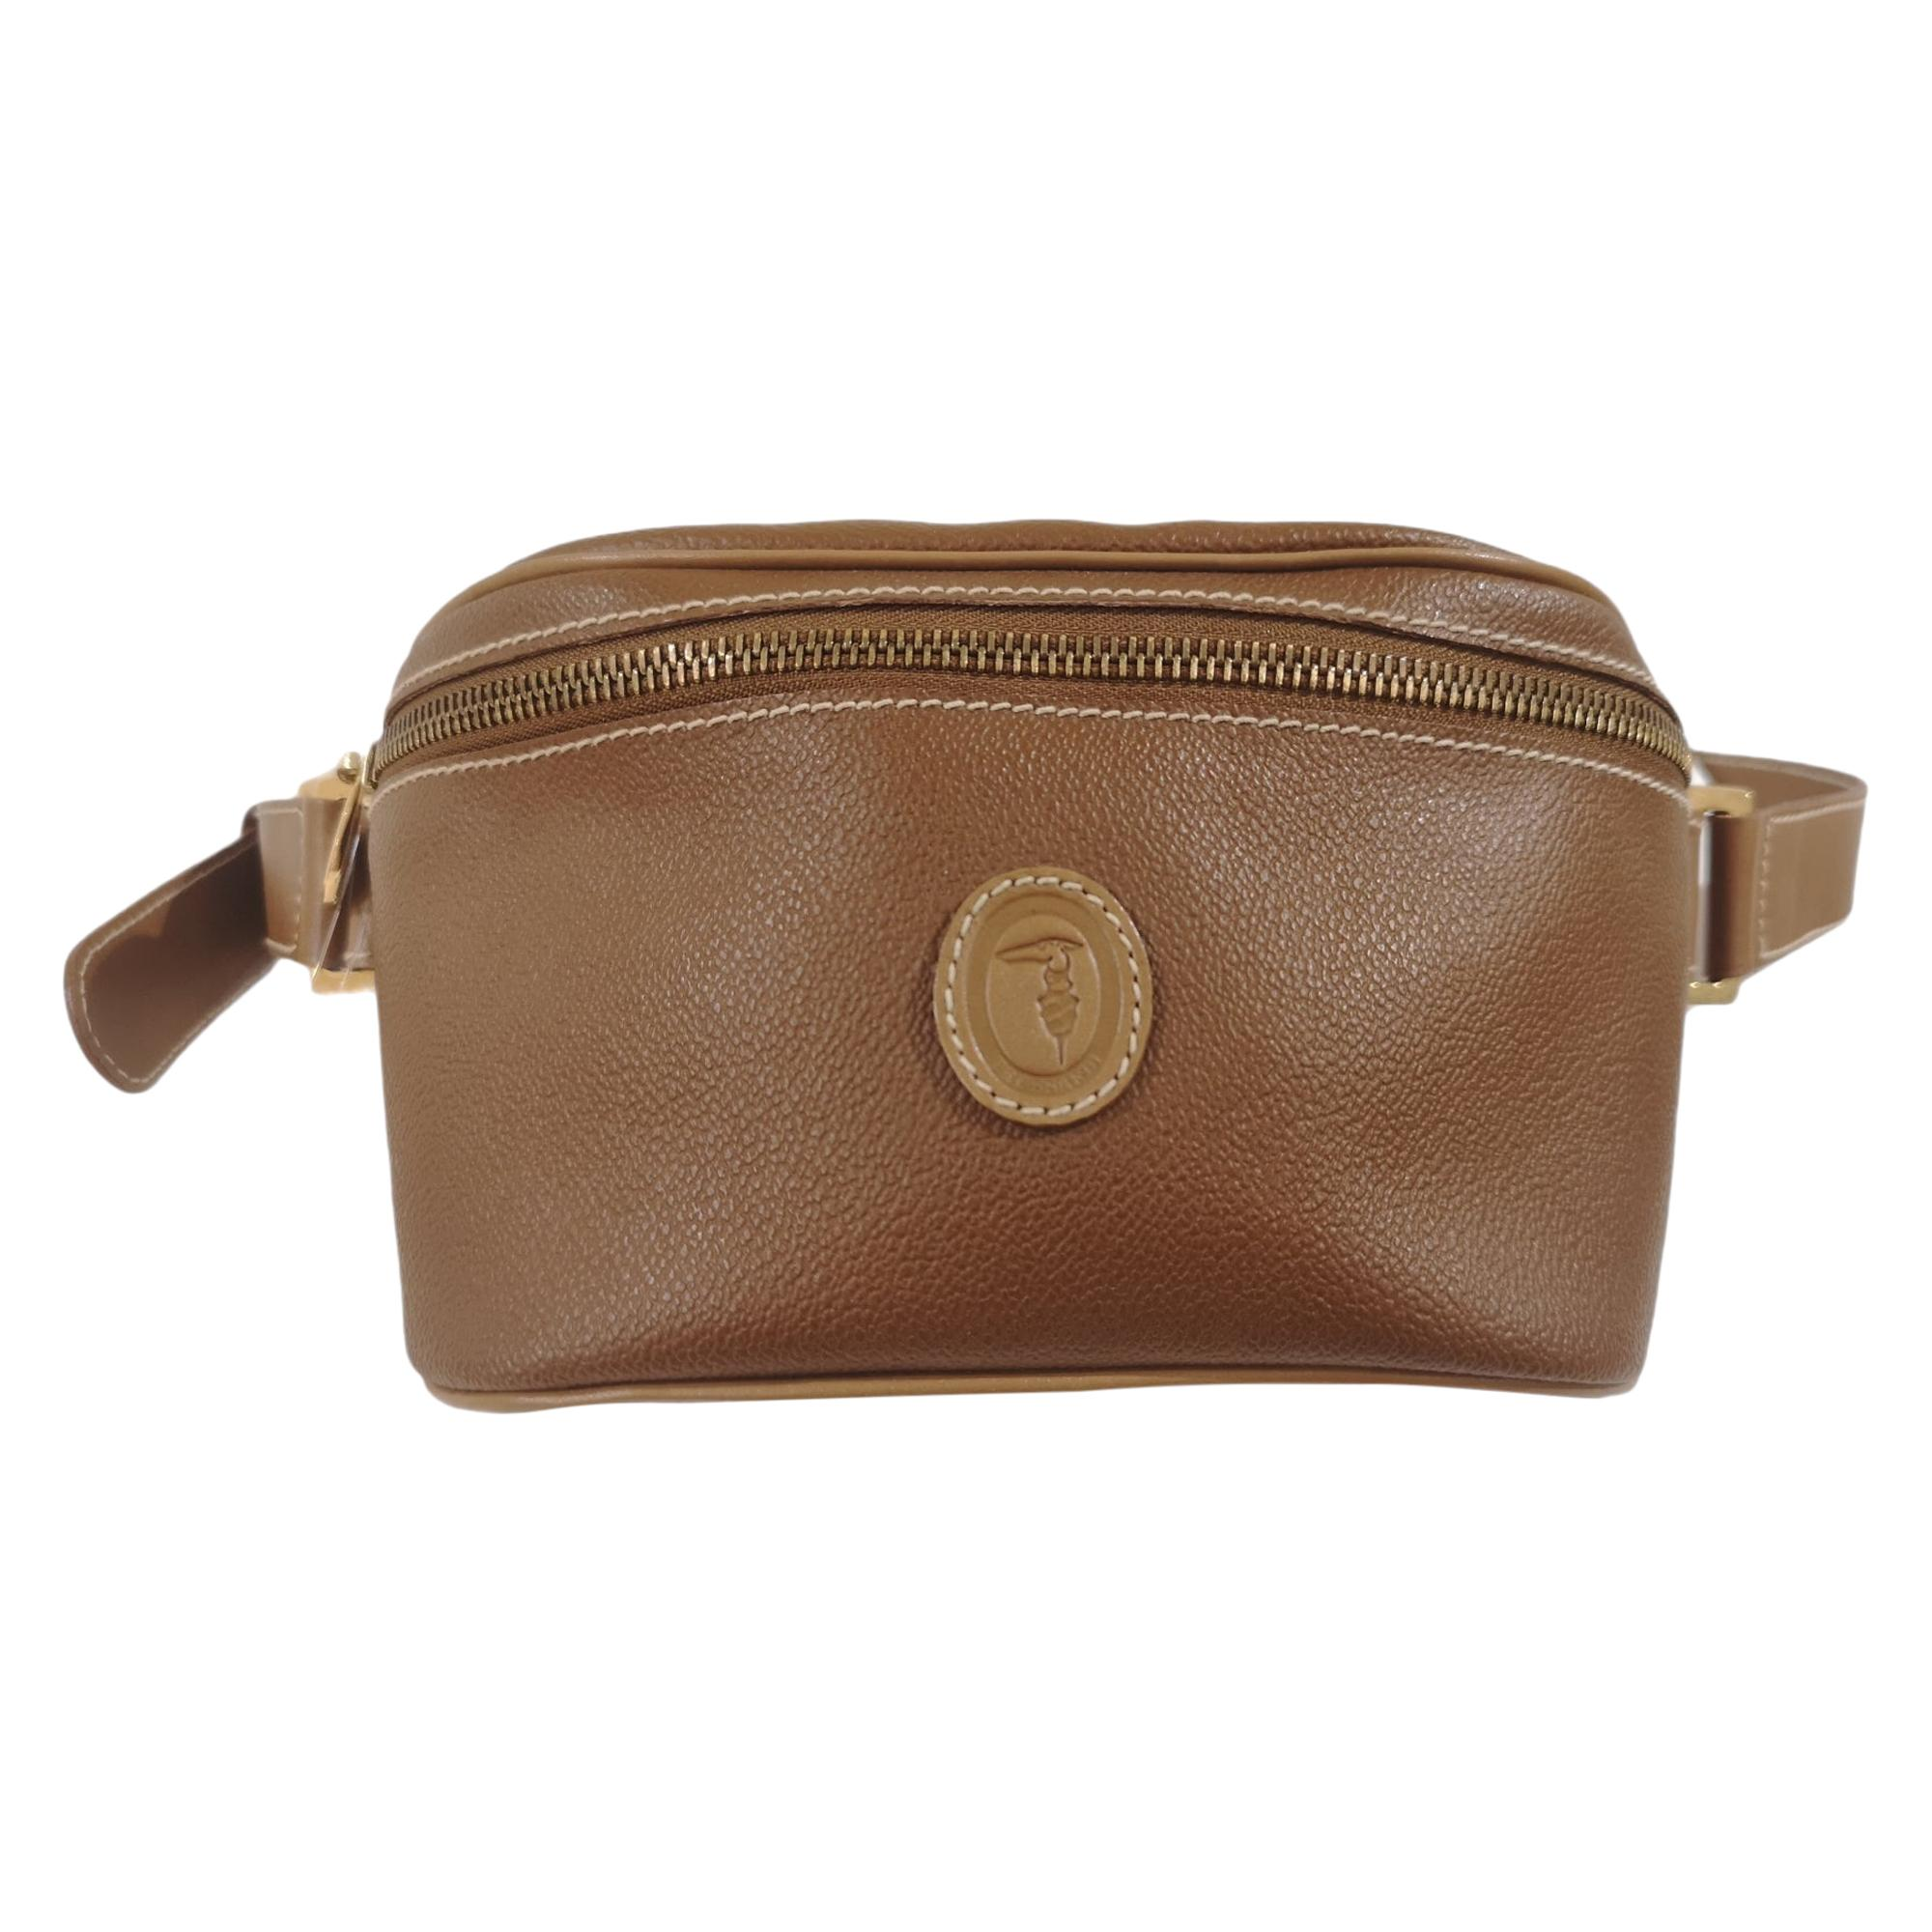 Trussardi brown leather fanny pack